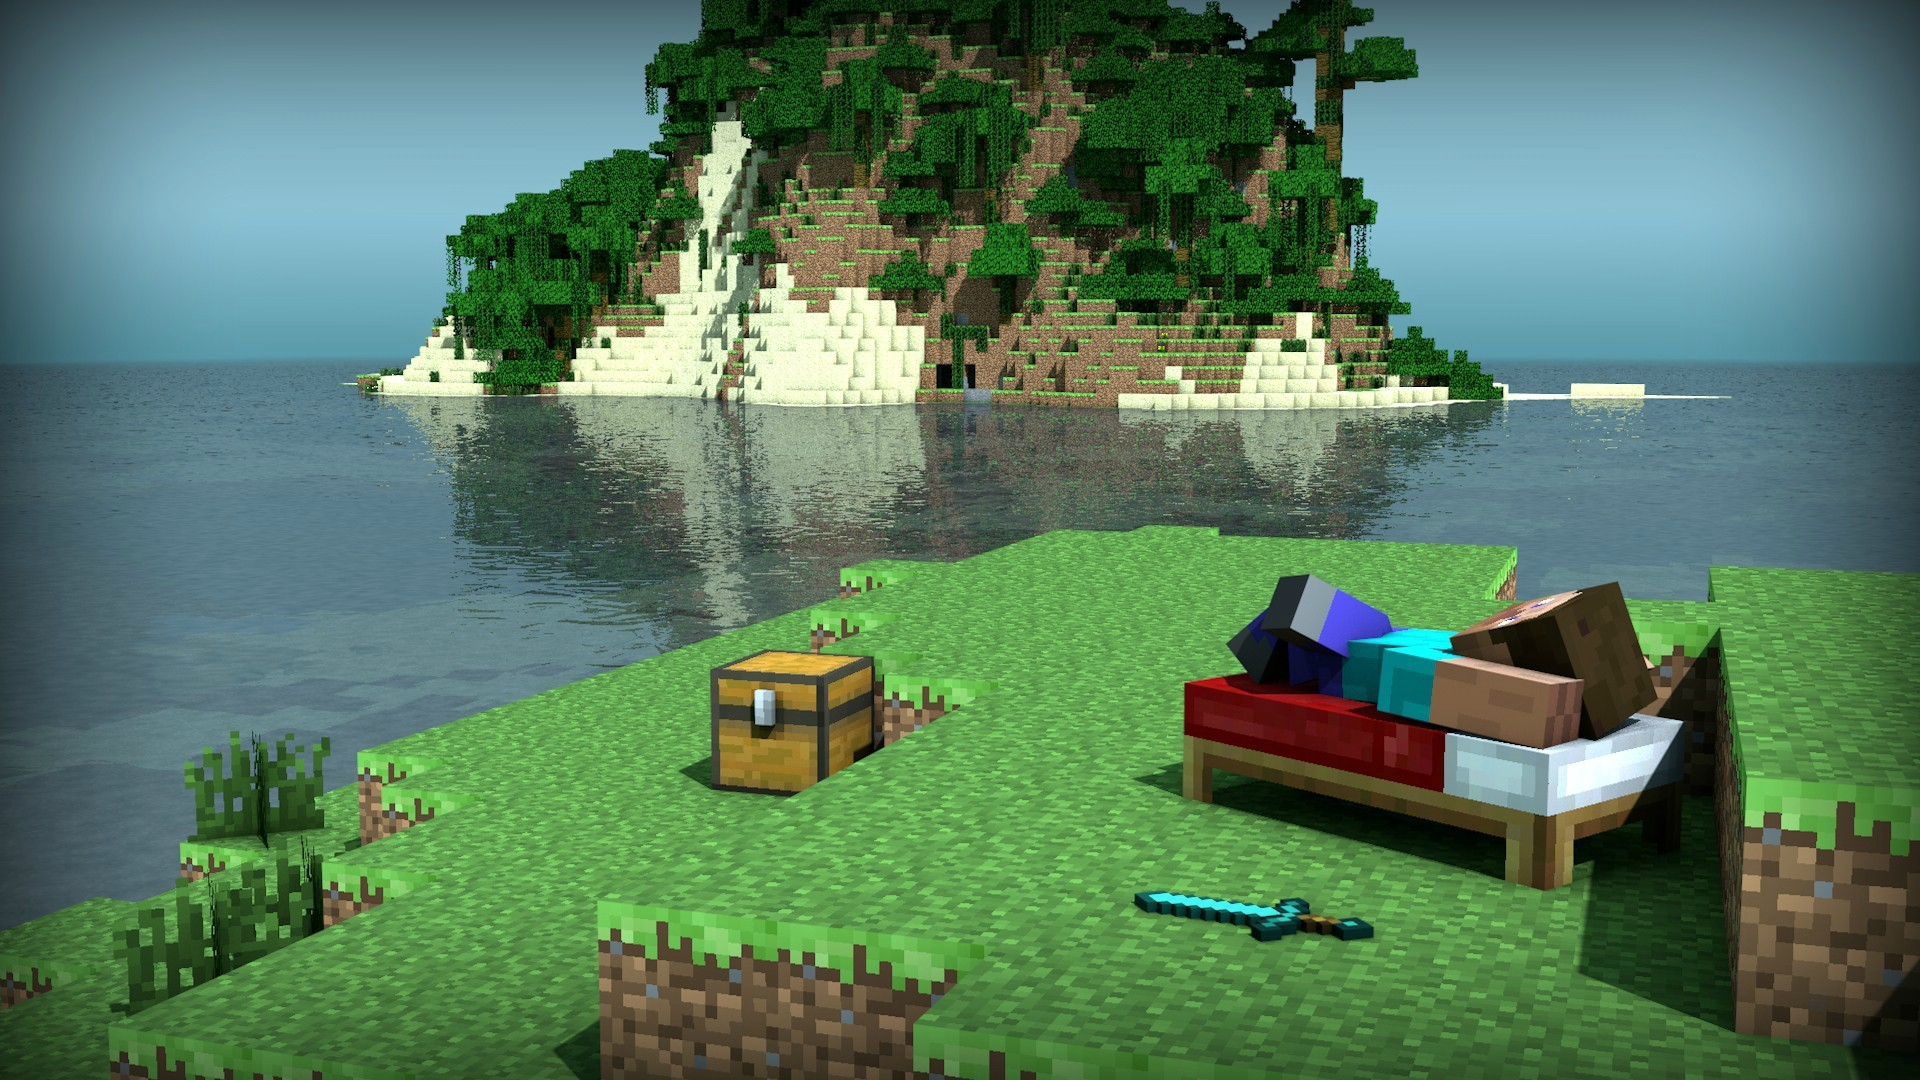 Res: 1920x1080, Minecraft Gallery images Relaxing Steve HD wallpaper and background photos